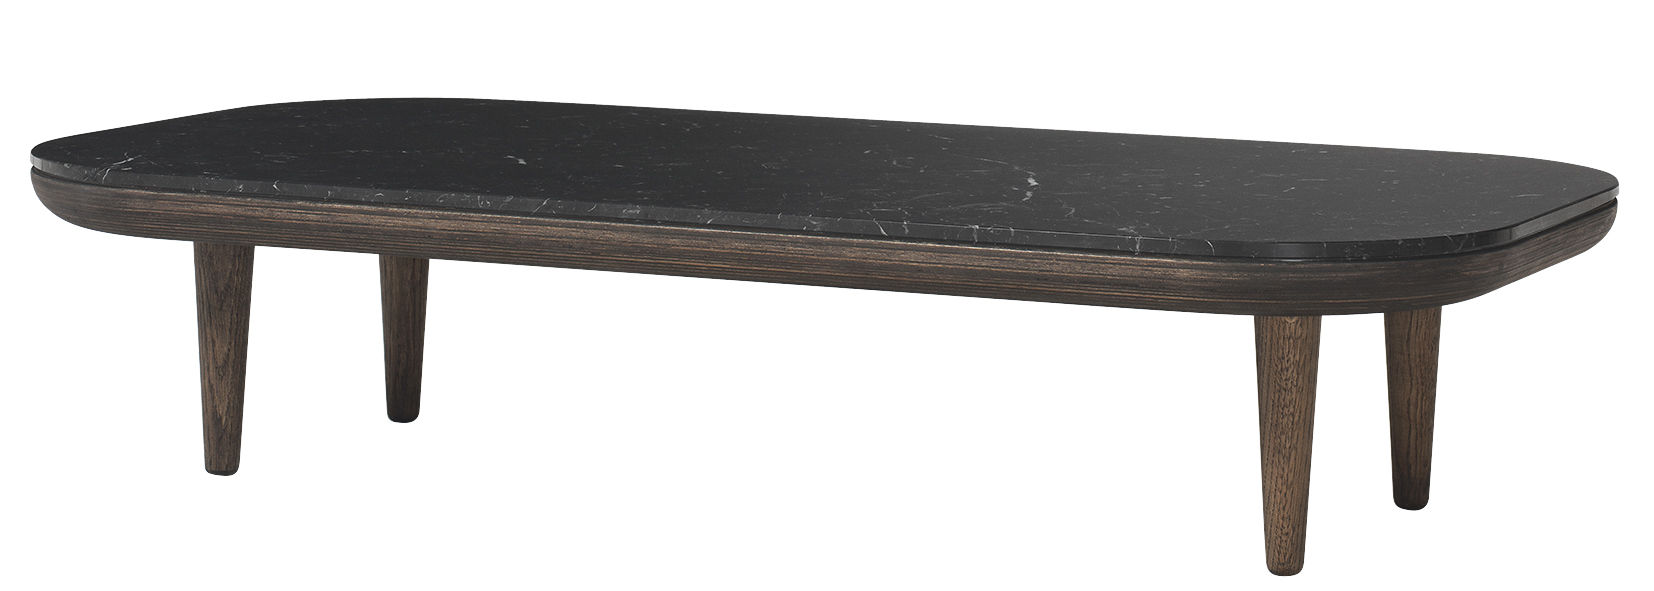 Table basse chene fly